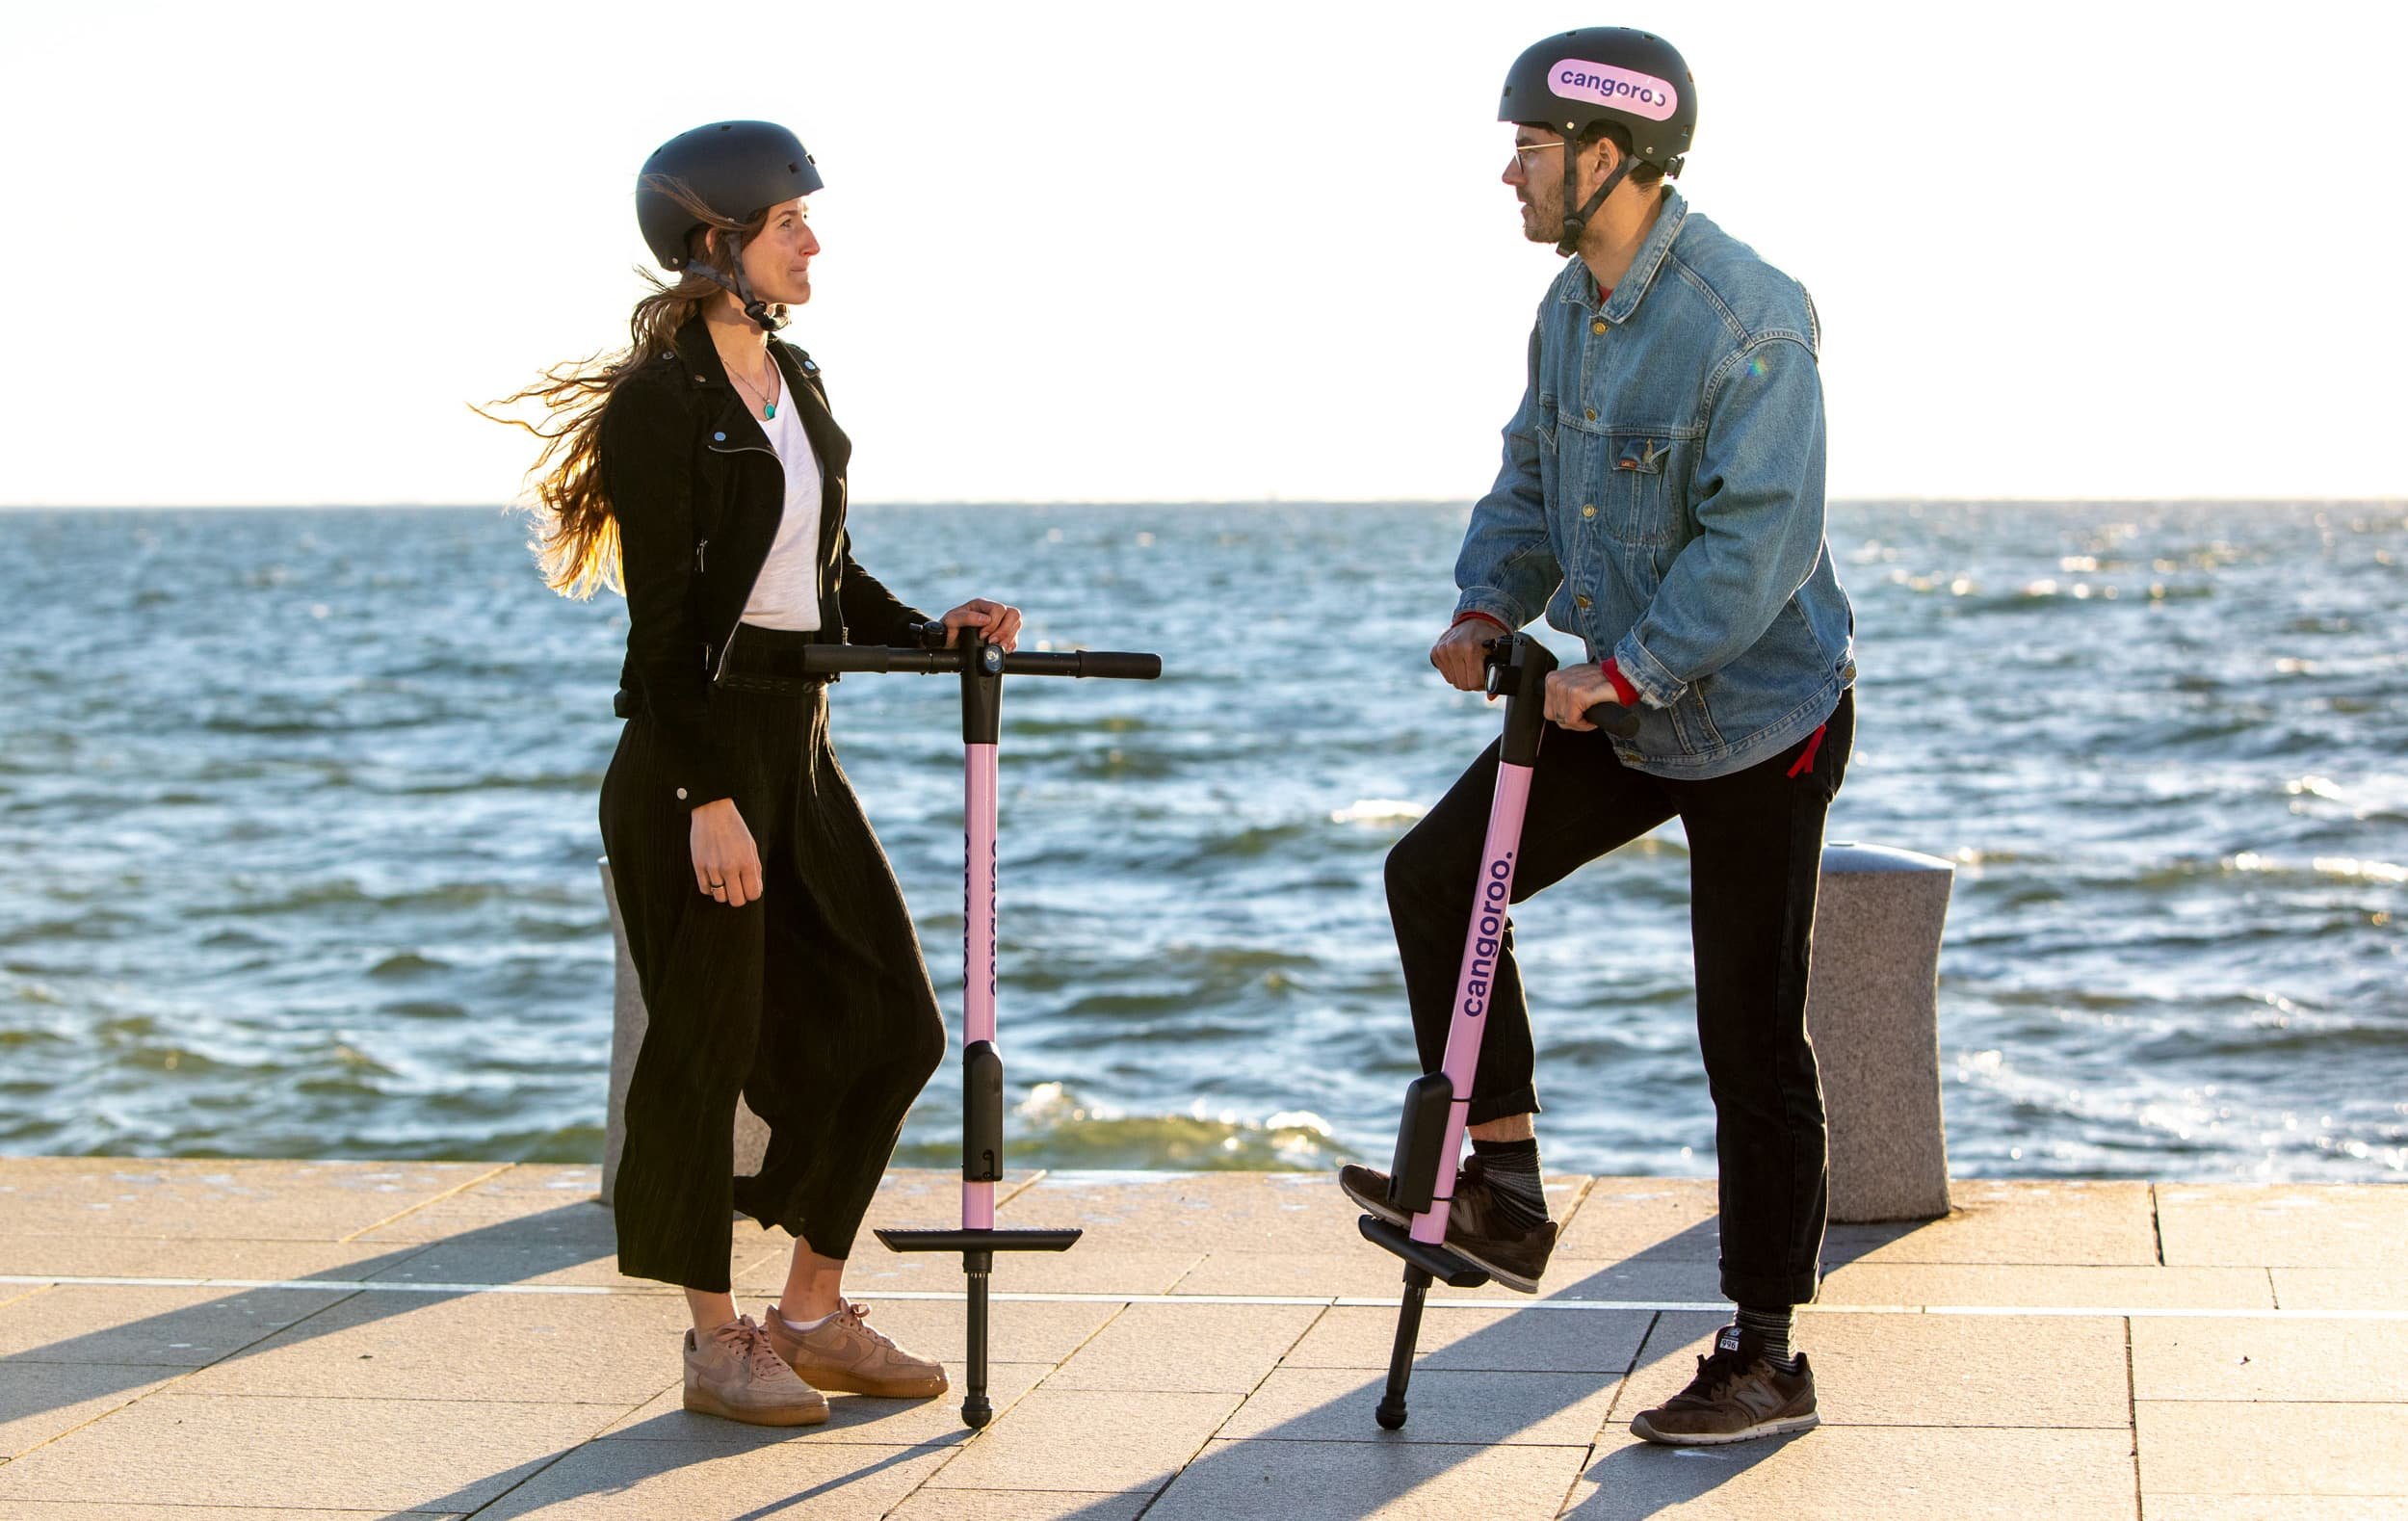 Is this Pogo Stick Rental App for Real? Does it even Matter?